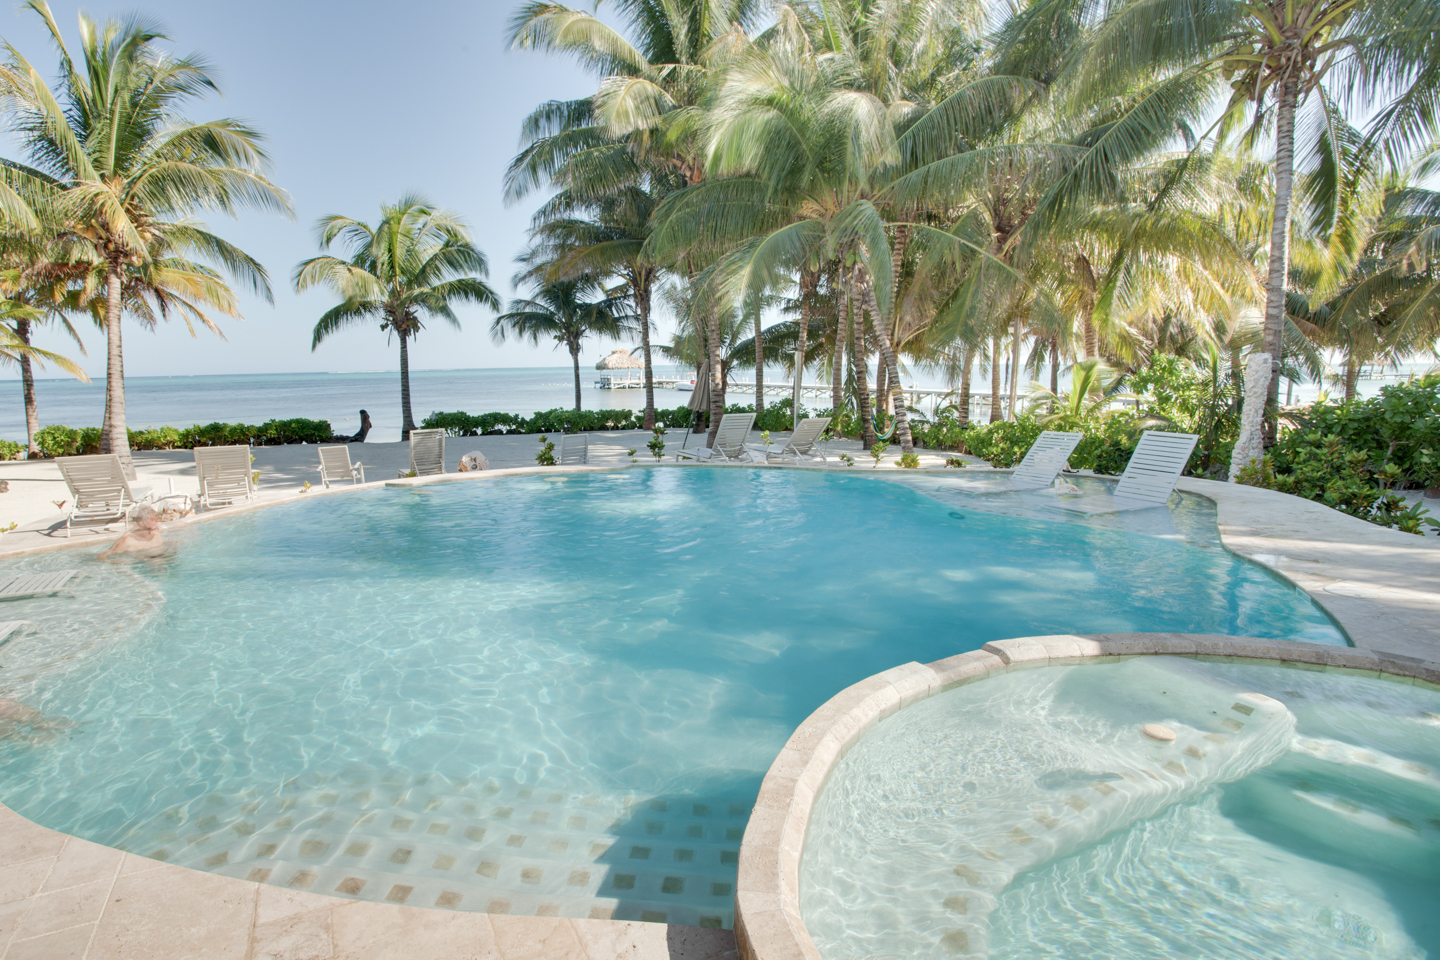 images of our beautiful beachfront villas coral bay villas  u2013 luxury beachfront villas in belize  rh   coralbaybelize